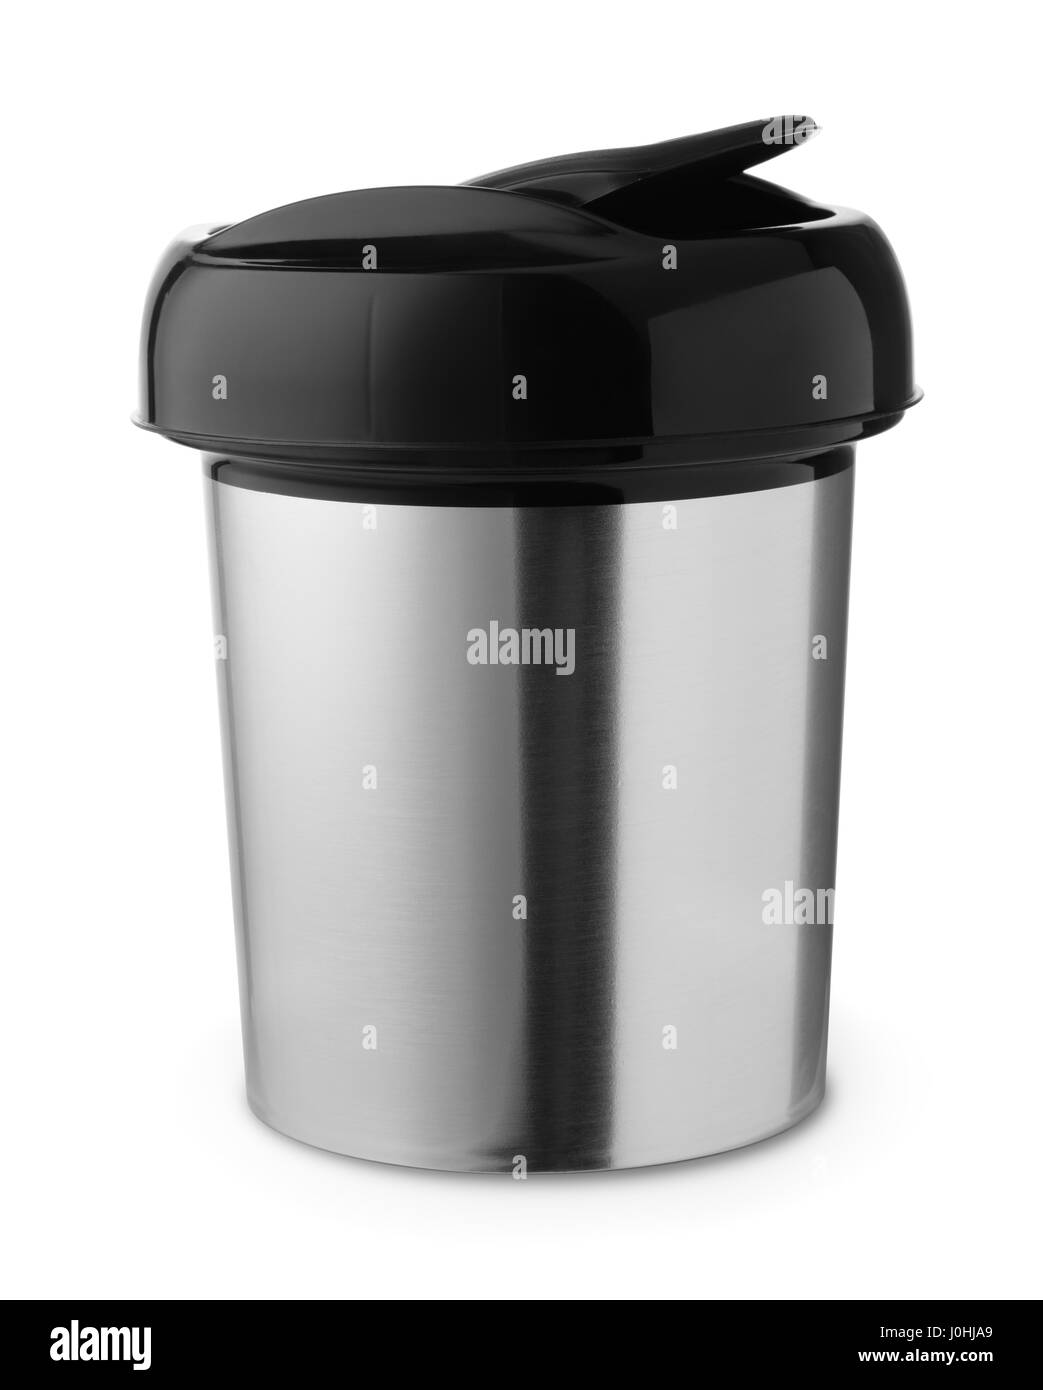 Table top trash can isolated on white - Stock Image